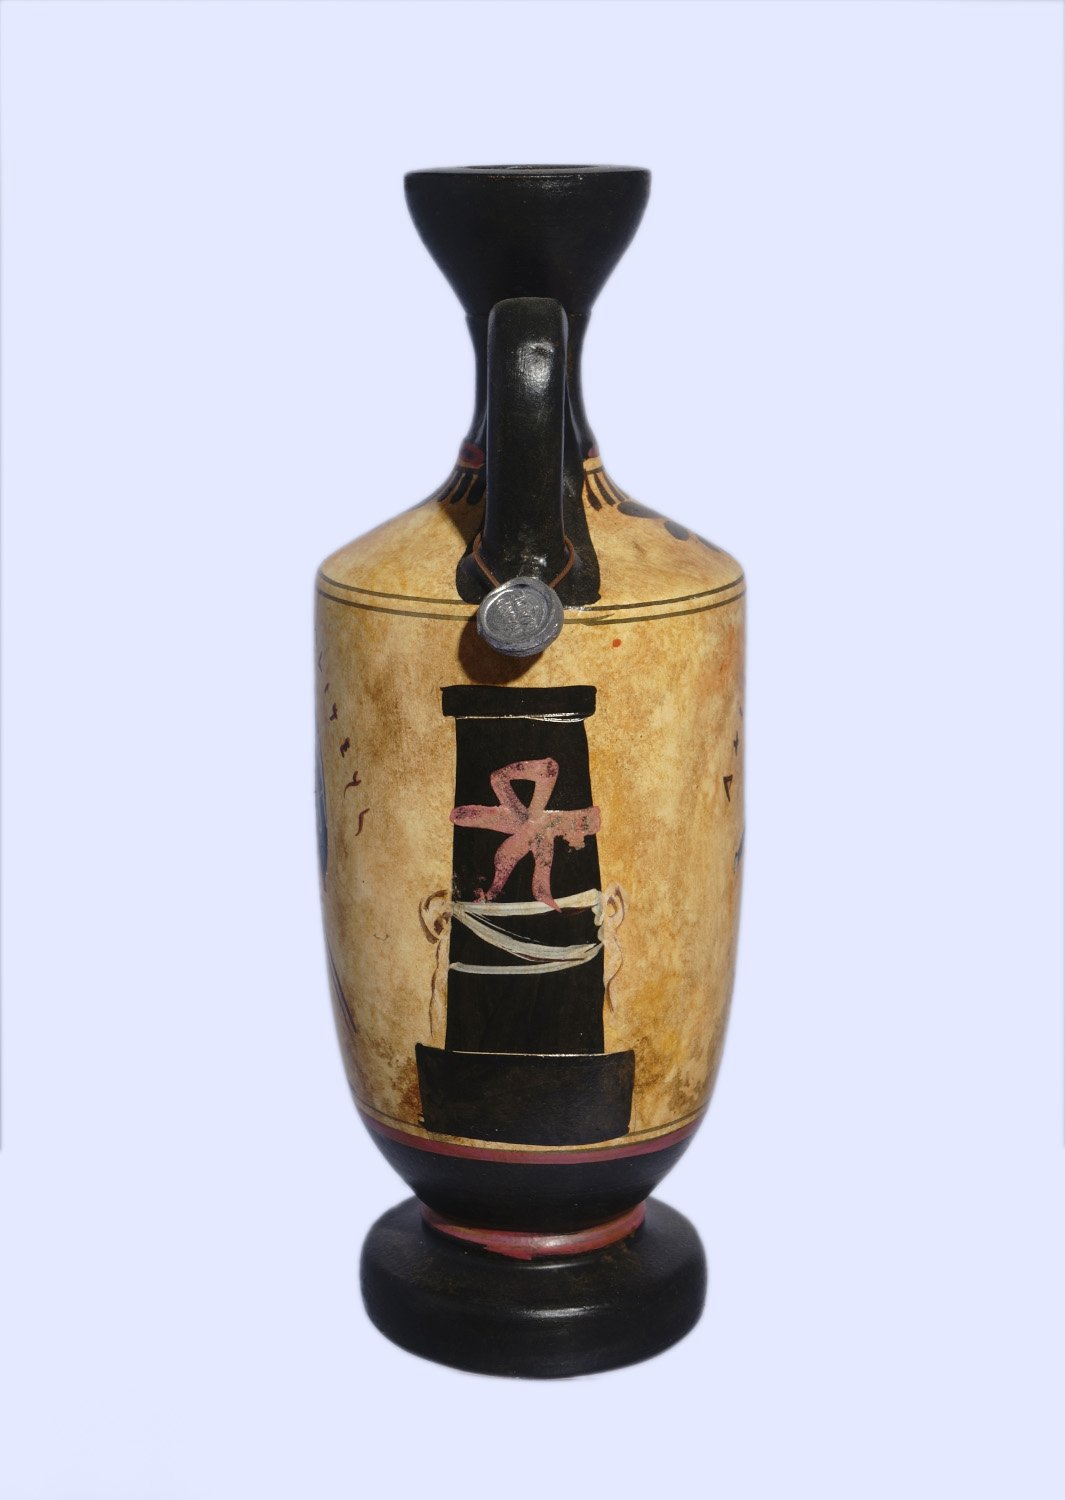 Archaic black-figure lekythos with Achilles and Thetis